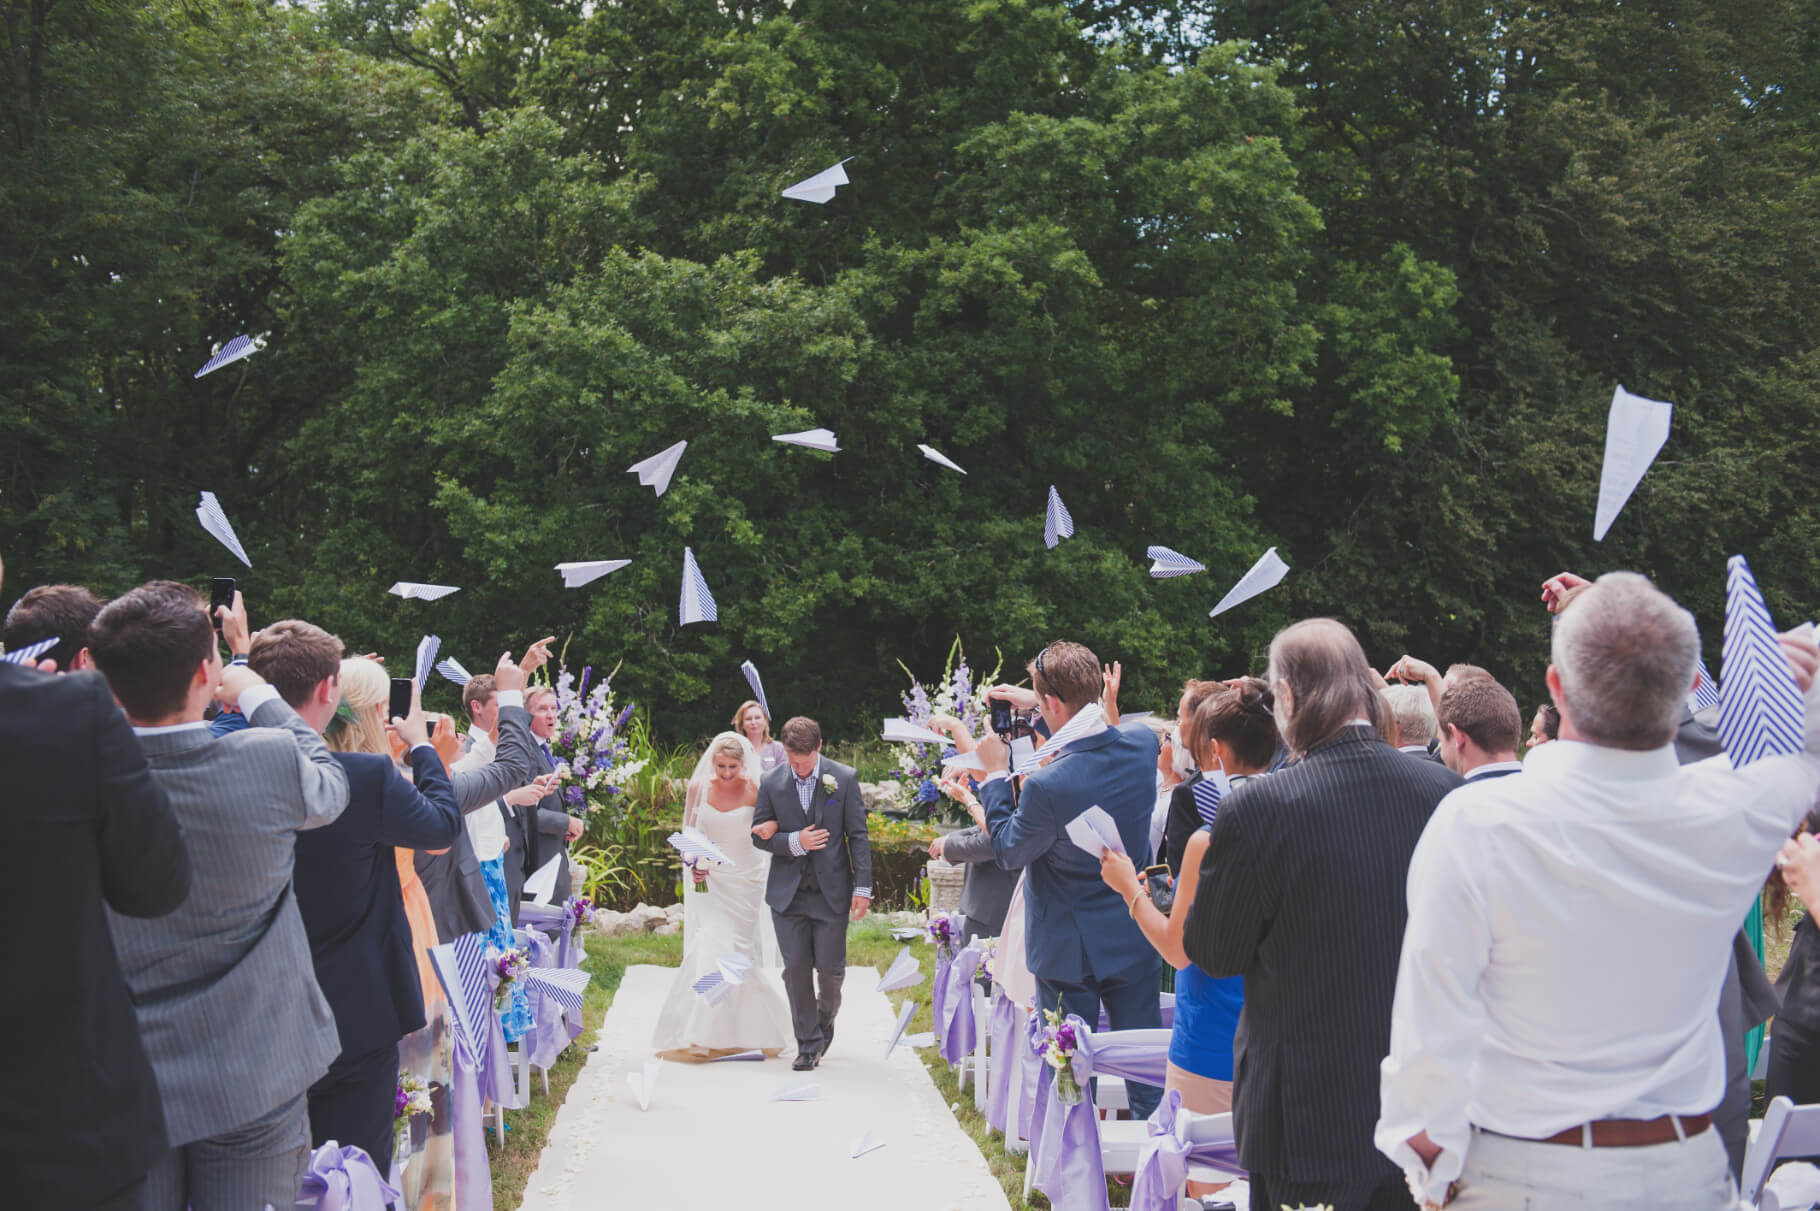 aeroplanes confetti wedding